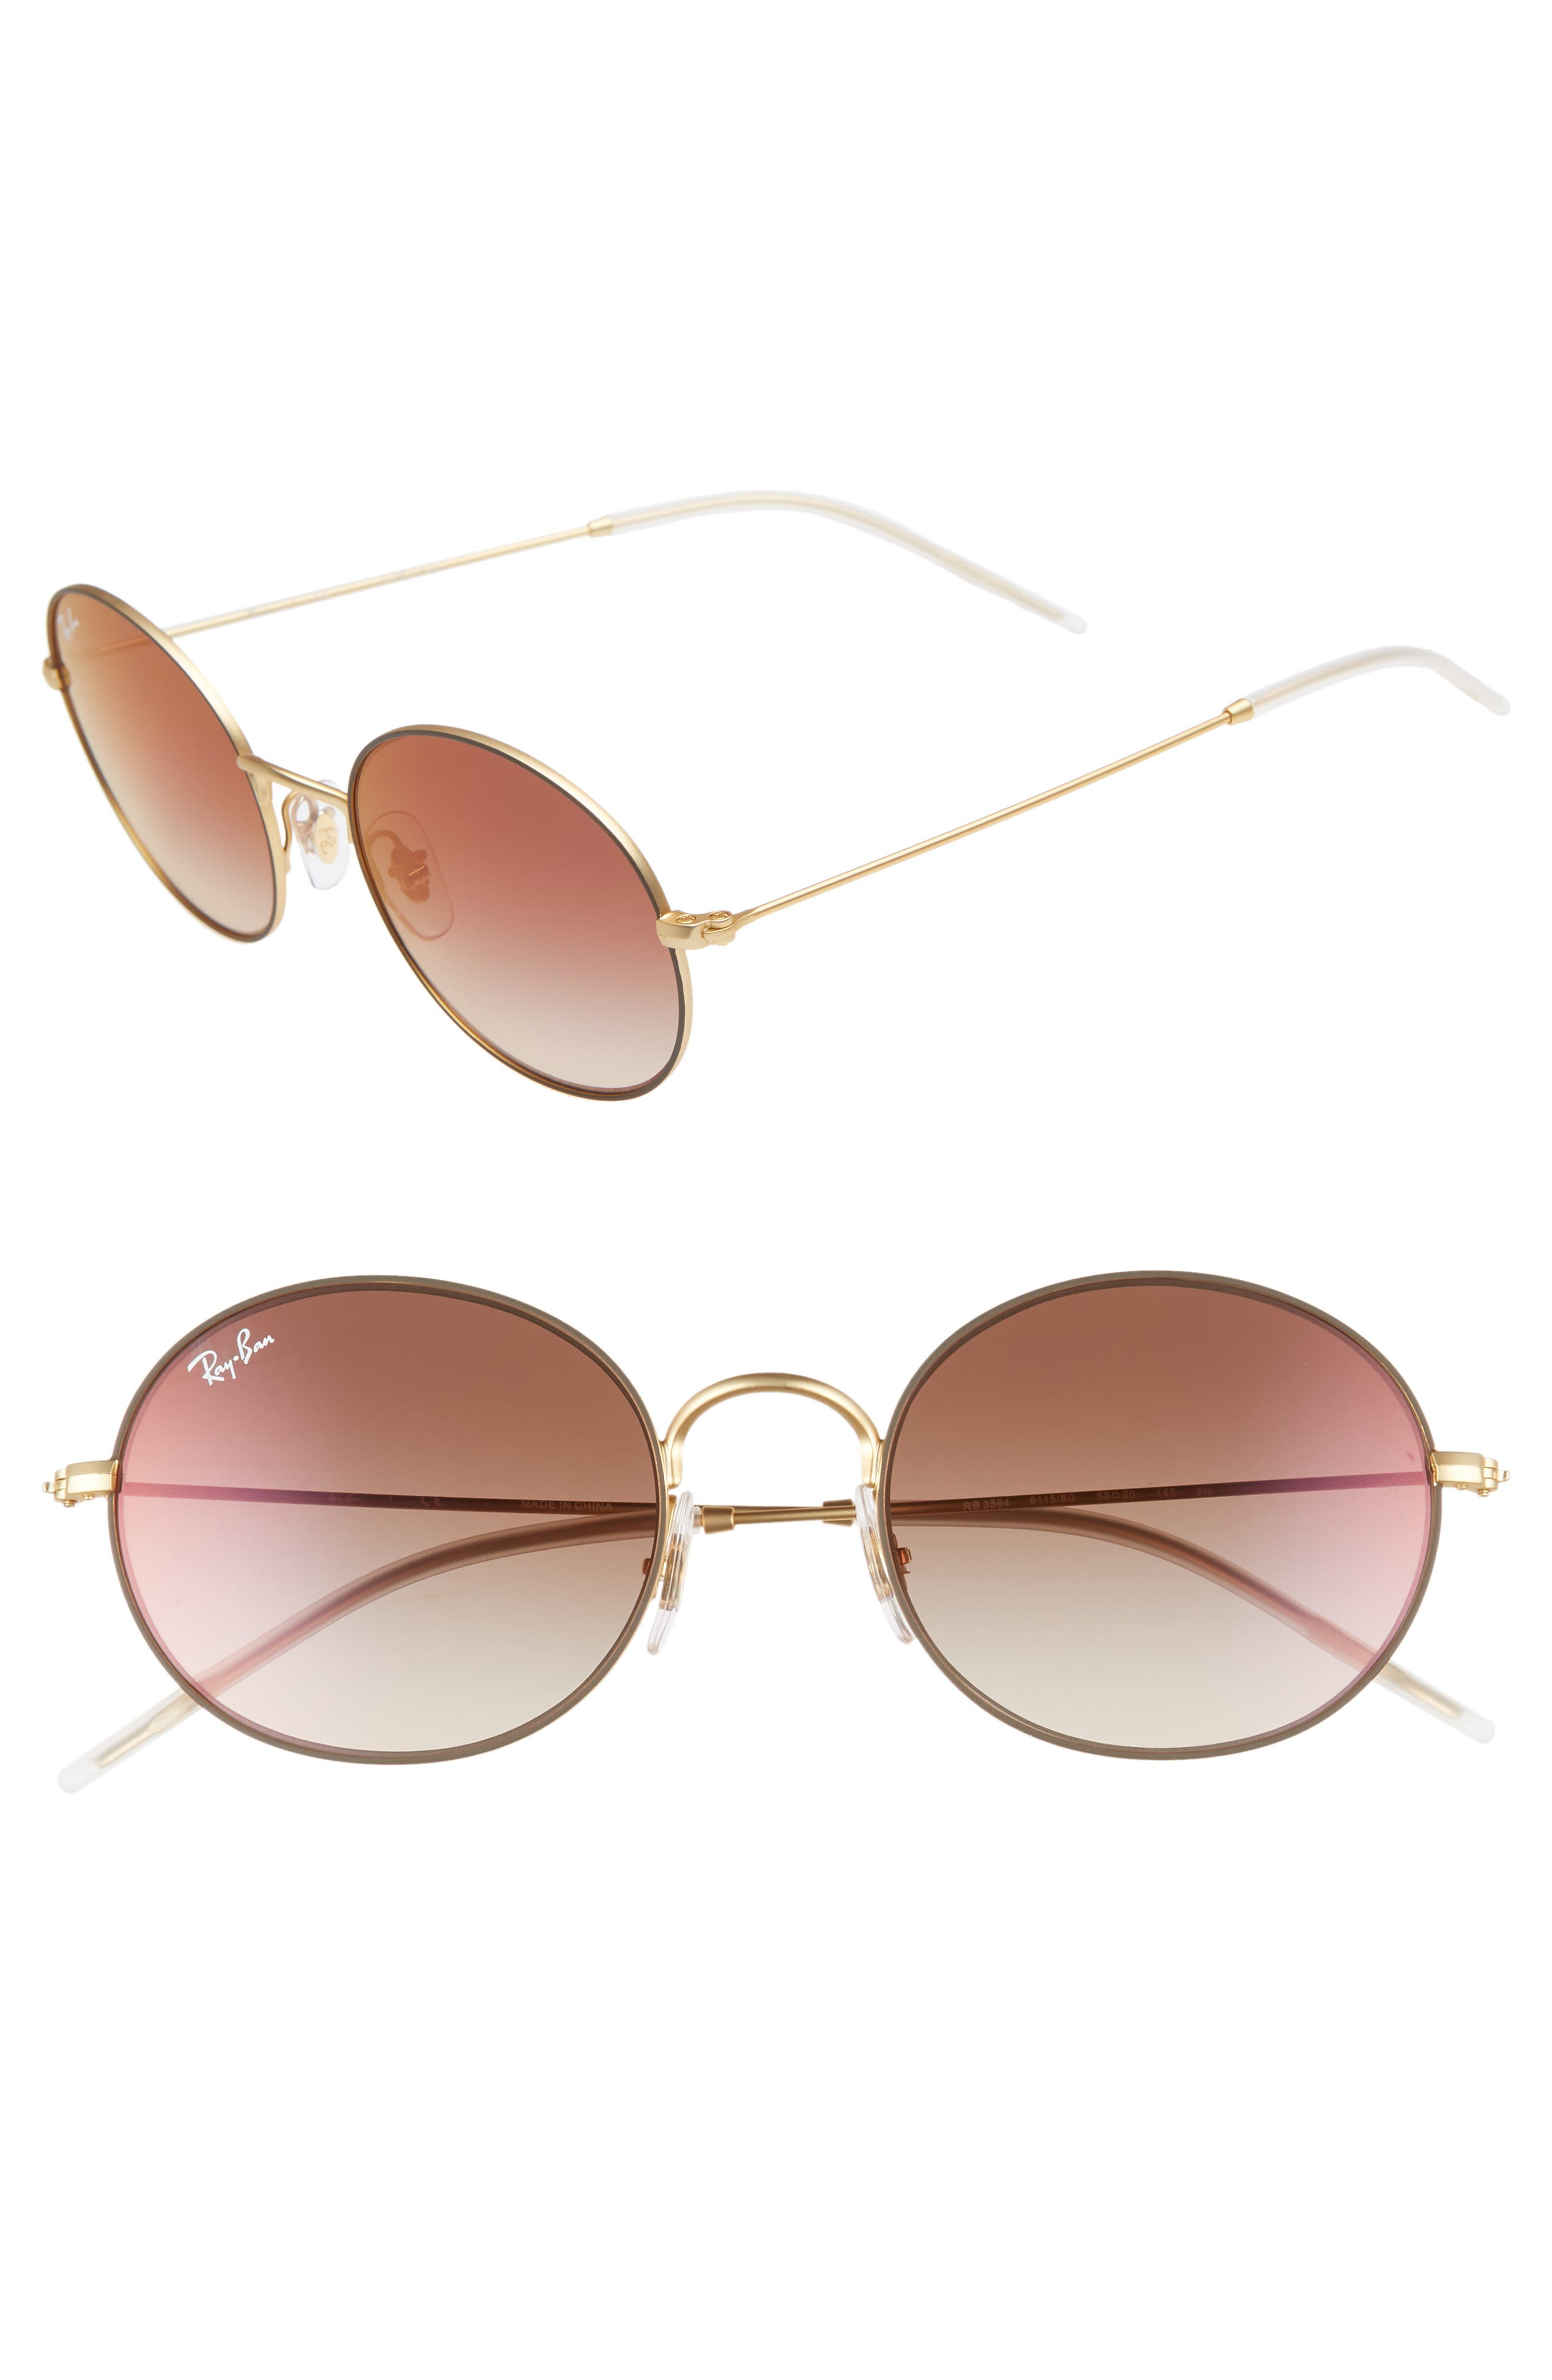 Ray-Ban 5m Round Sunglasses - Gold Brown